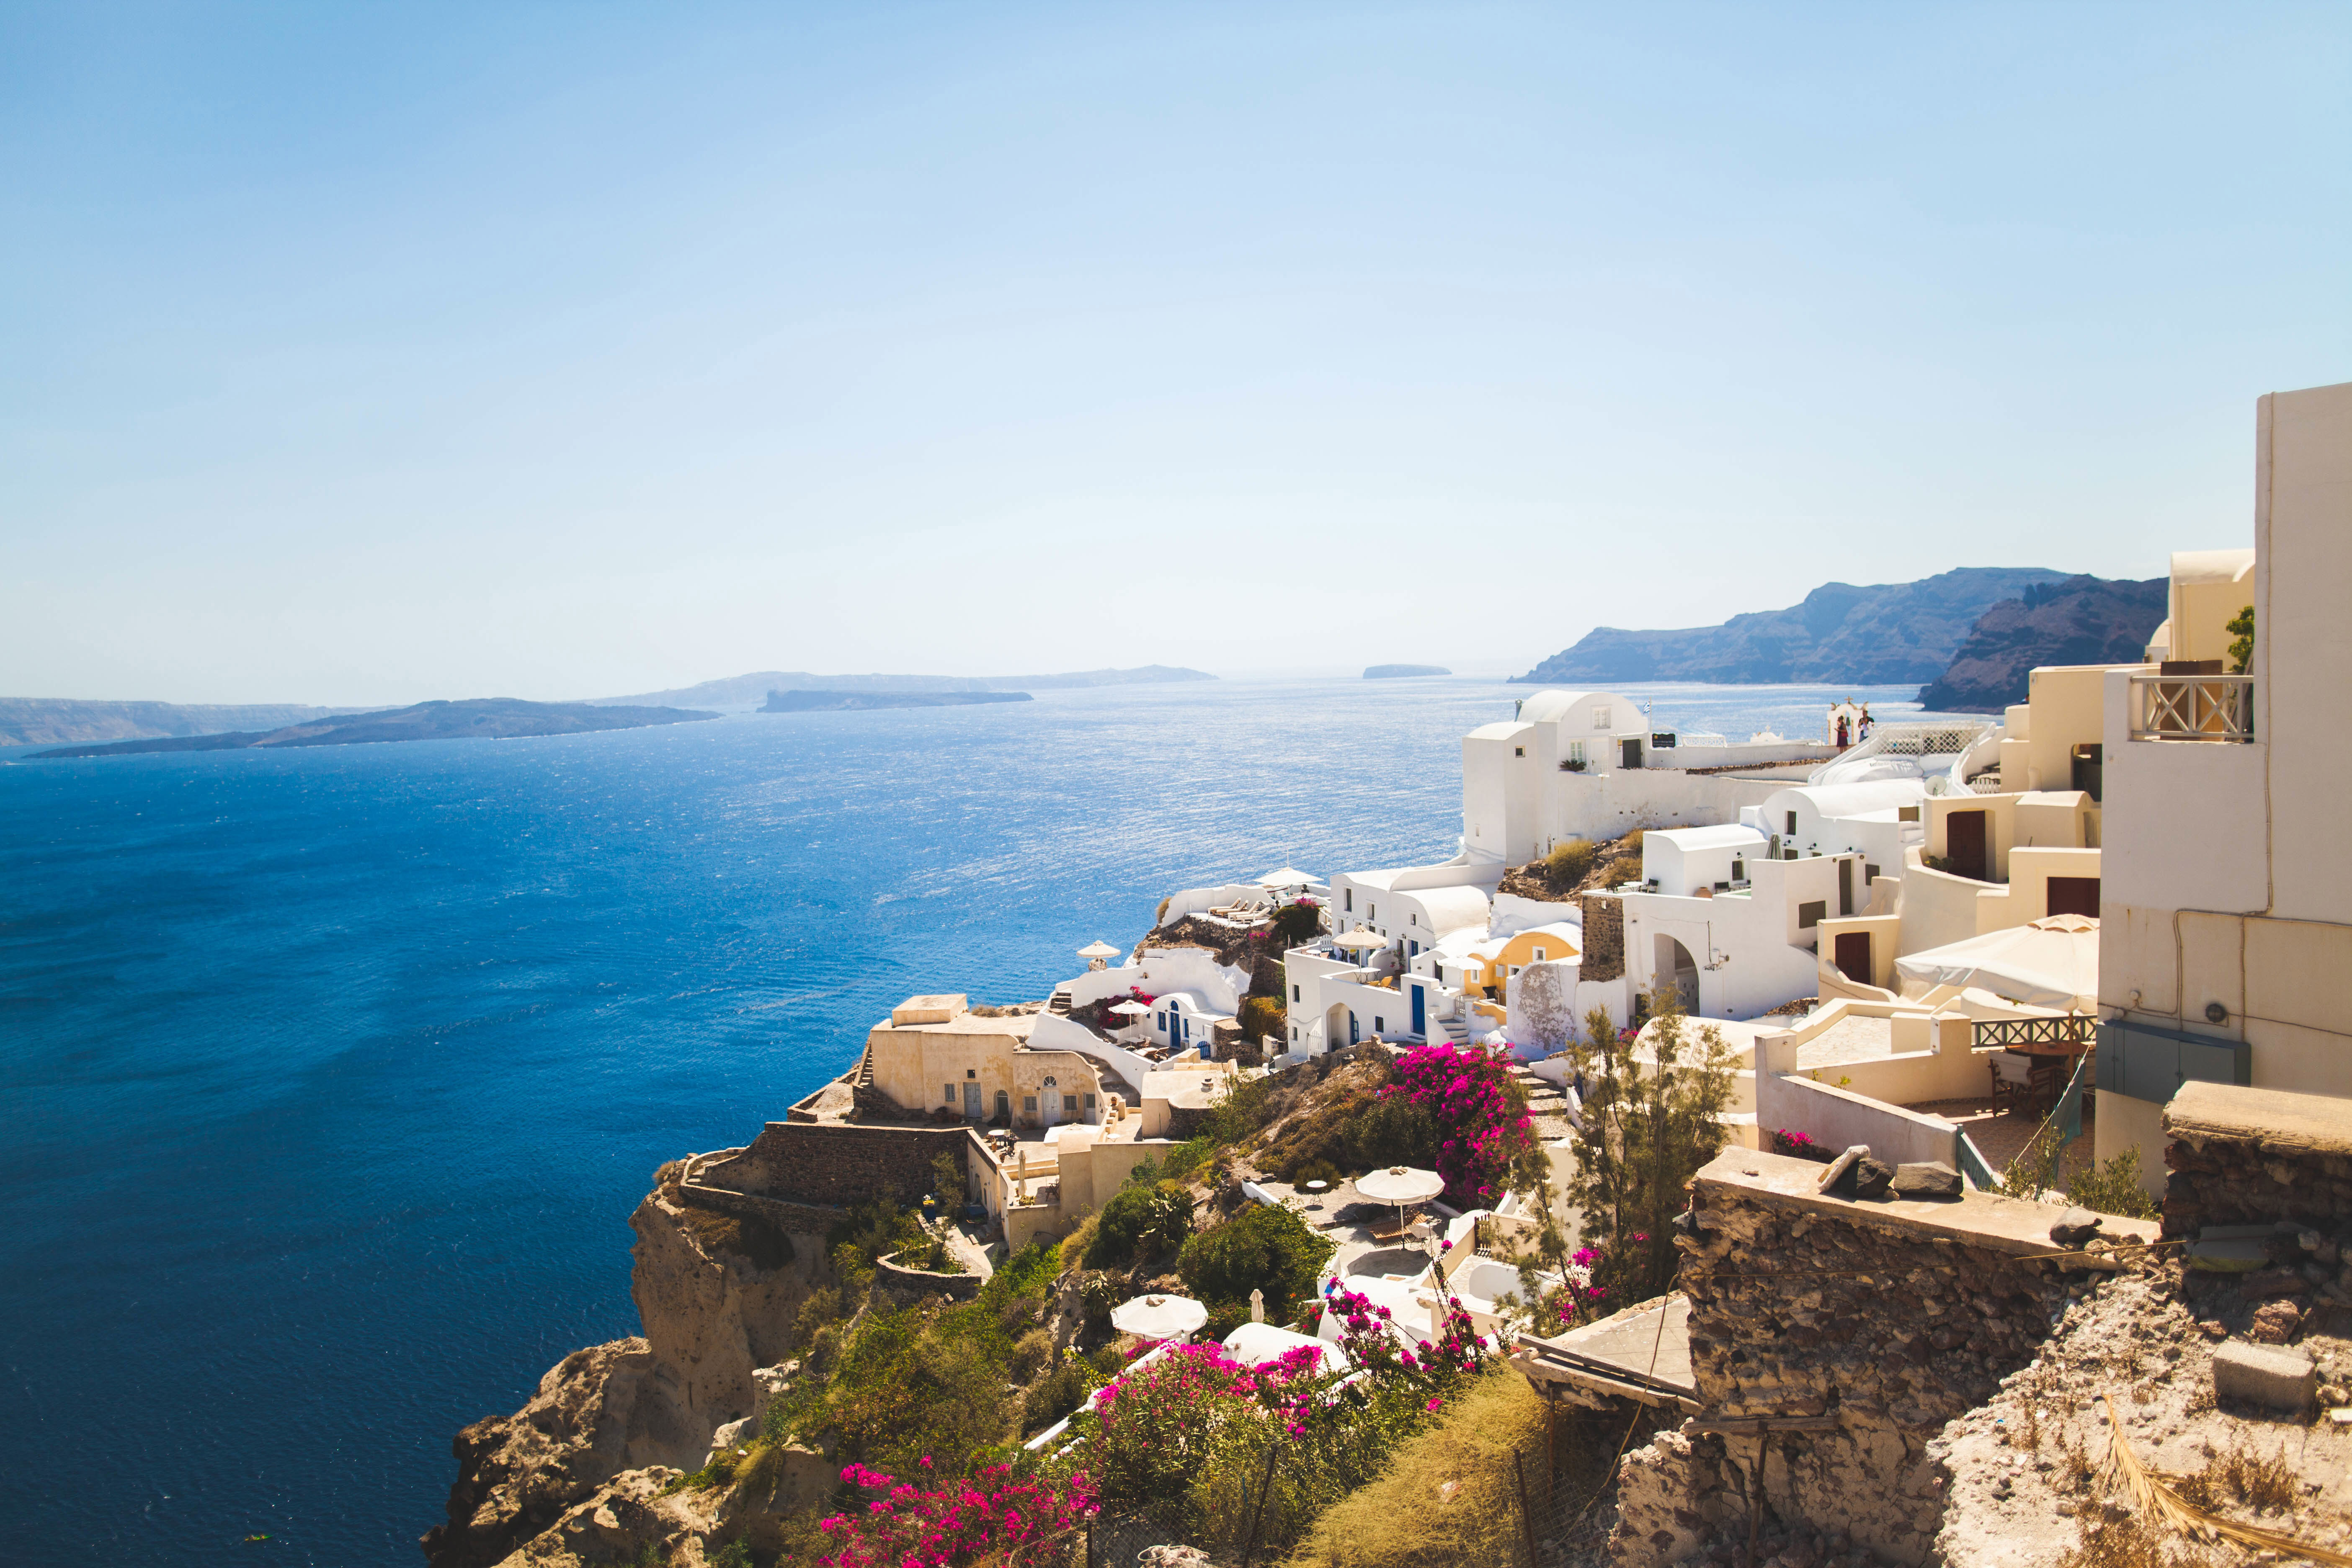 Summer Holiday. Greece or France?